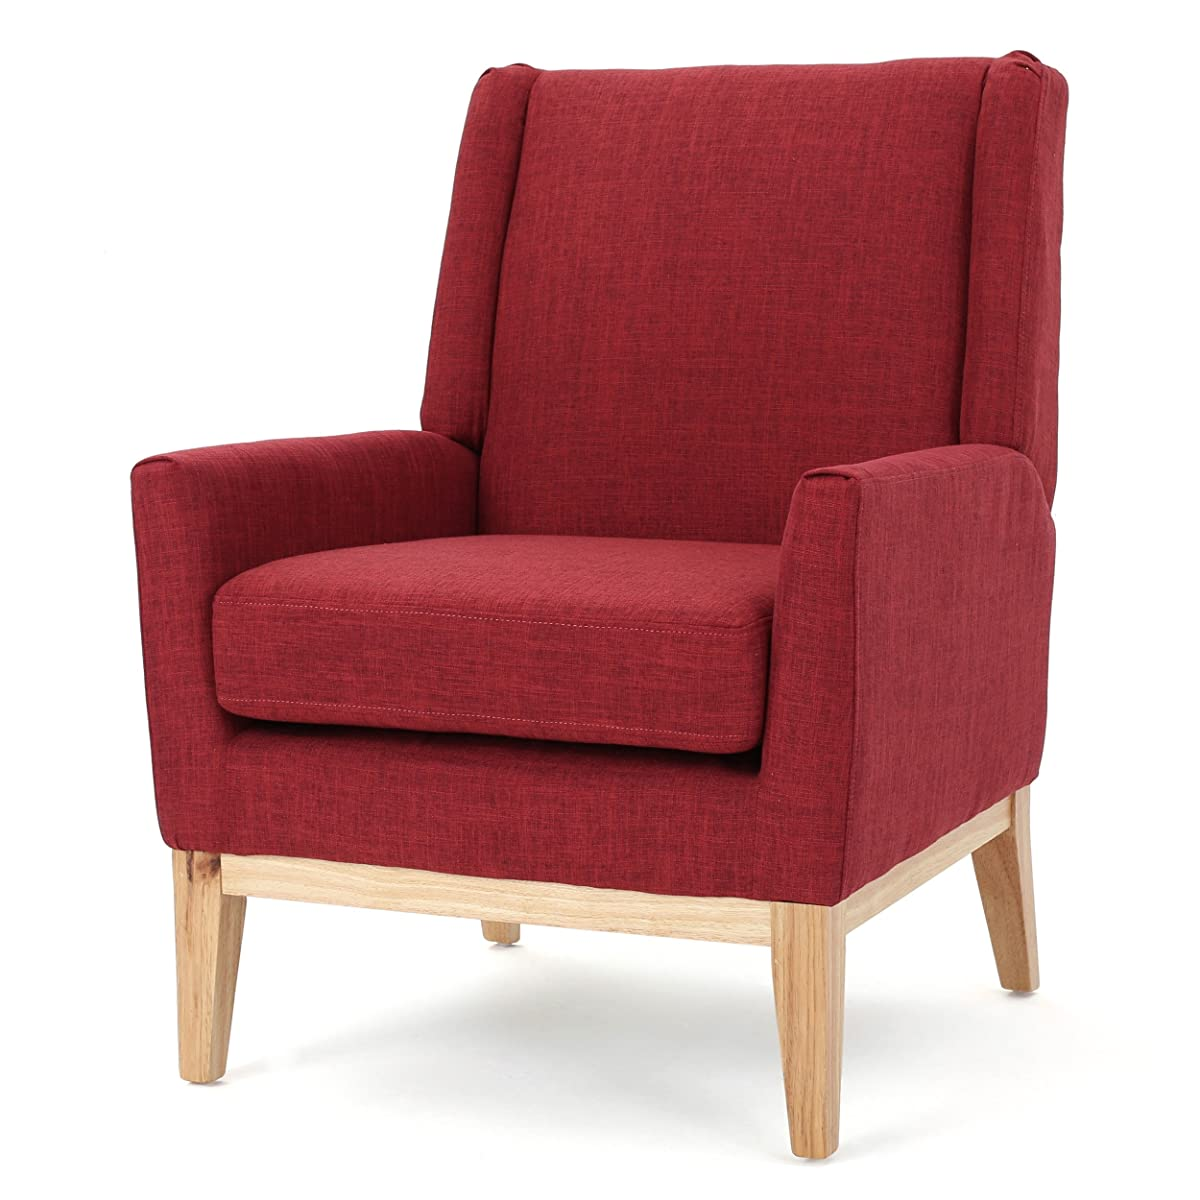 Archibald Mid Century Modern Fabric Accent Chair (Red)